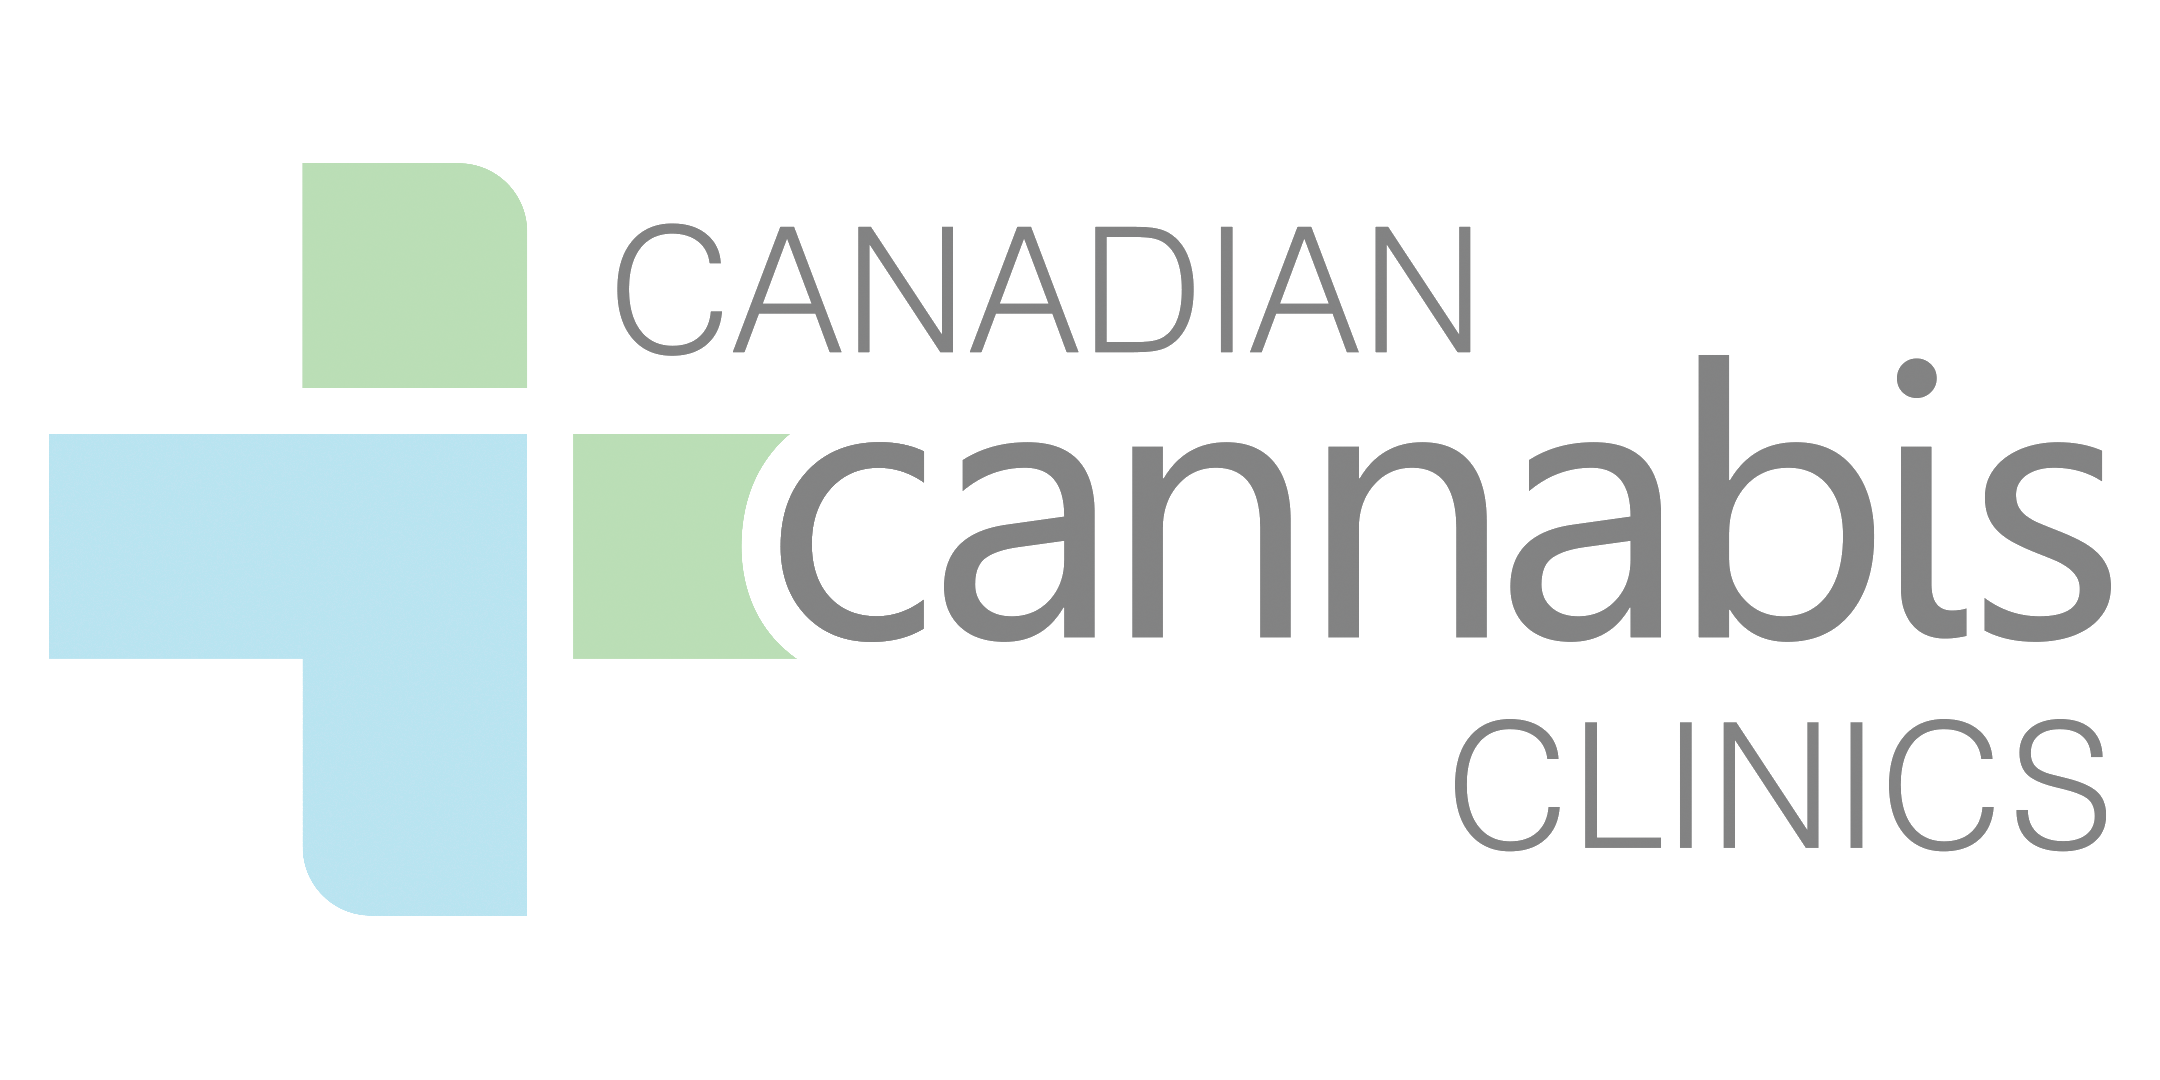 Canadian Cannabis Clinics | Canada's Foremost Medical Cannabis Clinics Help Center home page